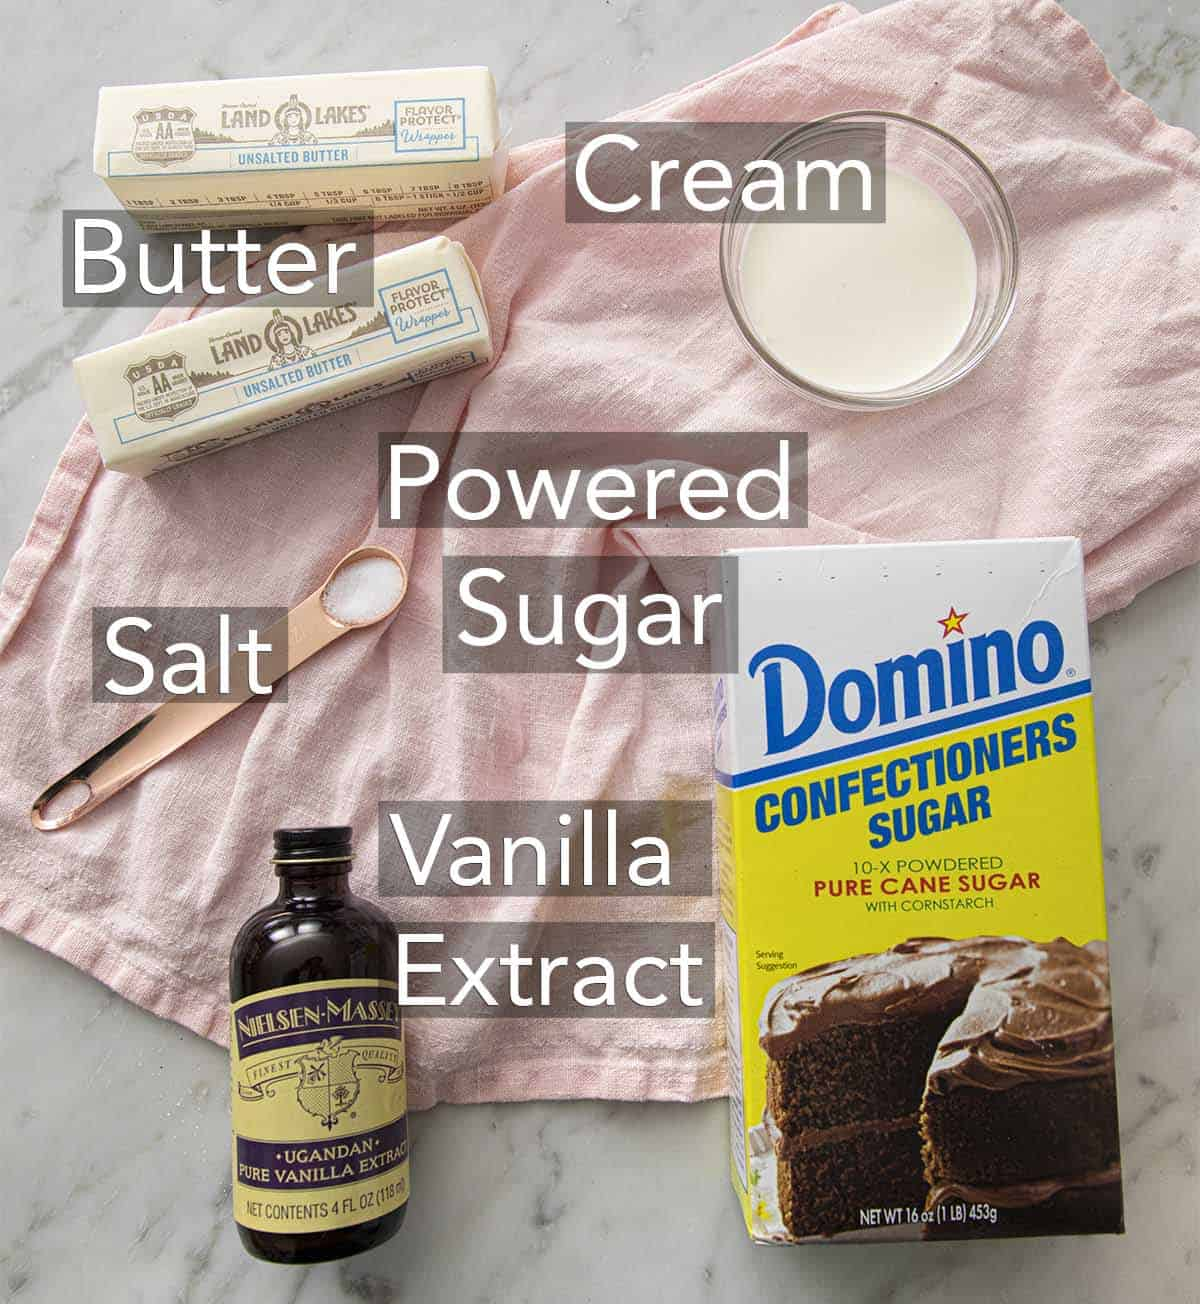 The ingredients for buttercream frosting on a marble surface.